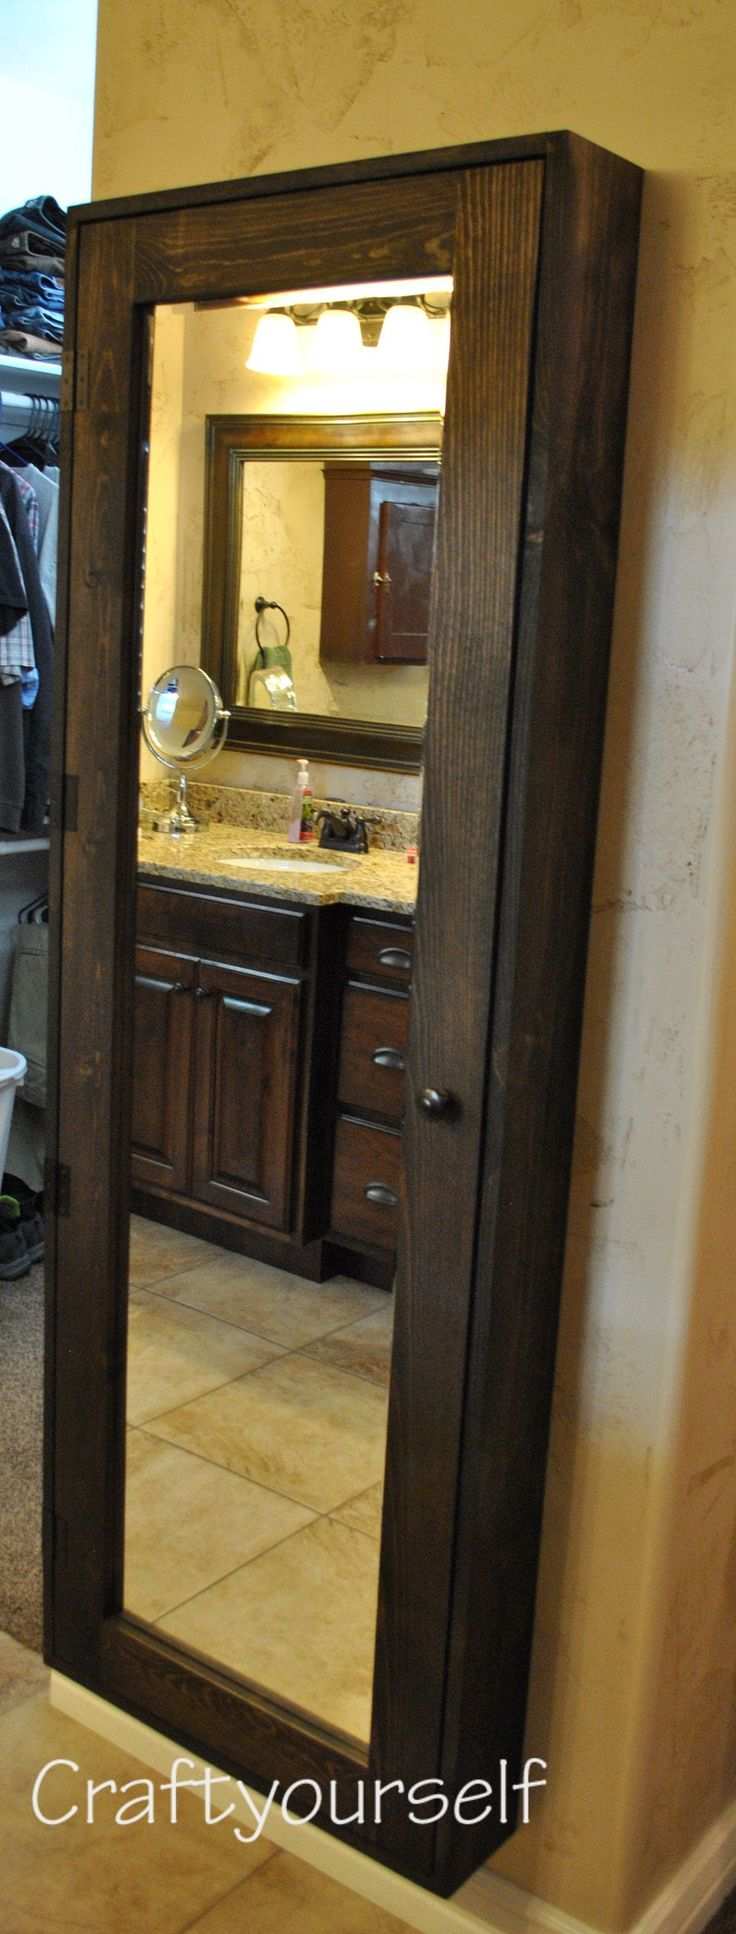 Bathroom mirrors with storage - Diy Bathroom Cabinet With Mirror